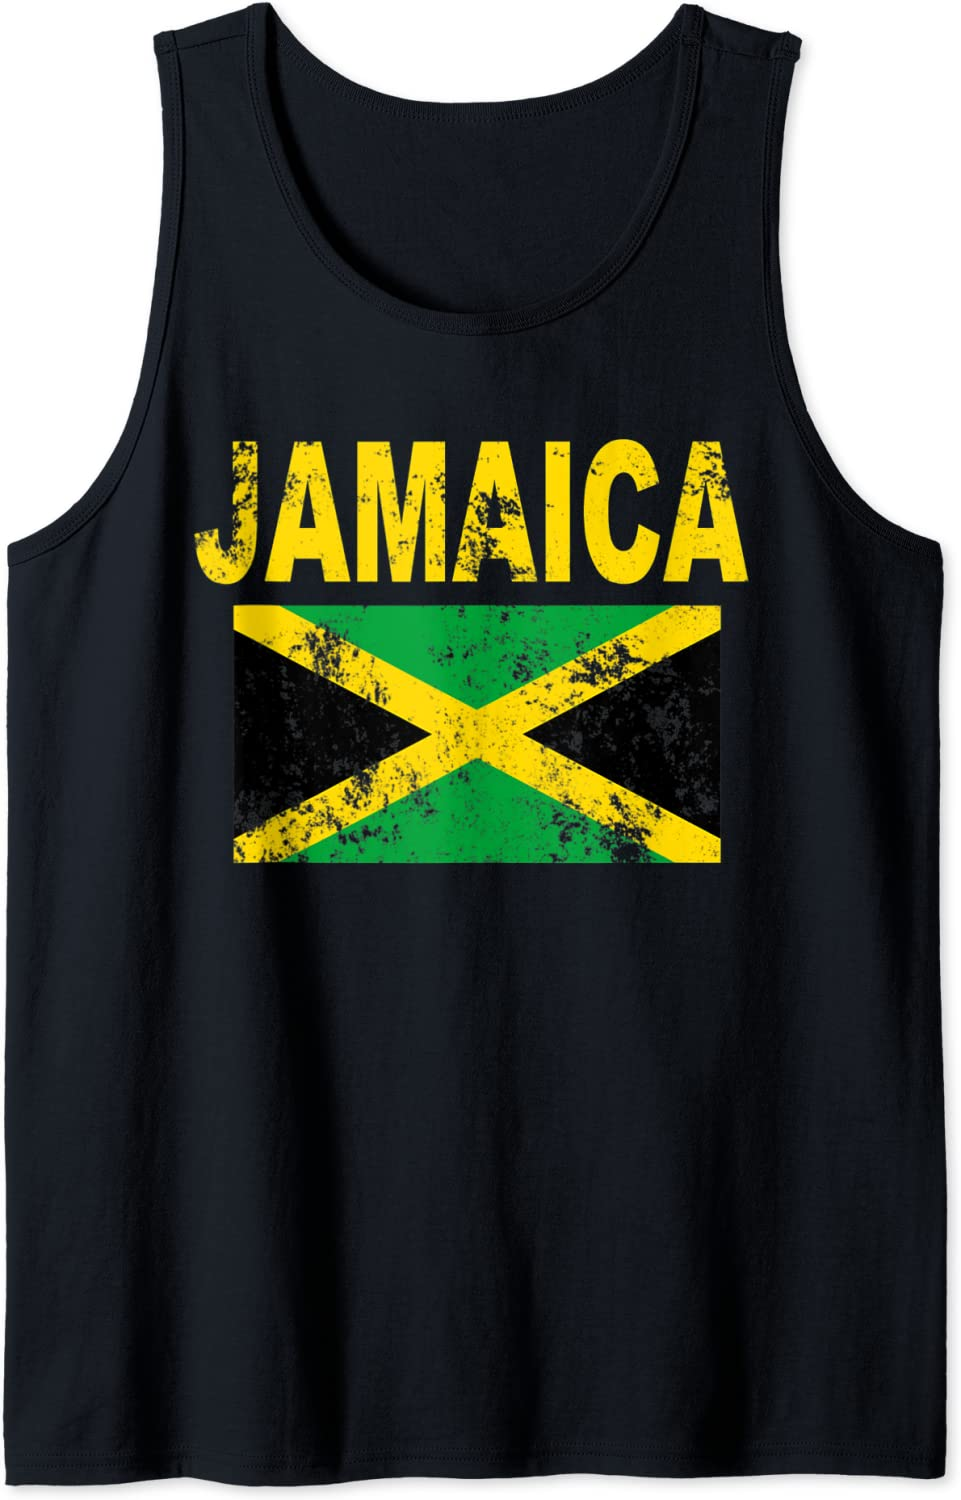 Flag Jamaica T-Shirt Cool Jamaican Flags Tank Gift Tee Women Men 4 Ranking integrated 1st place years warranty